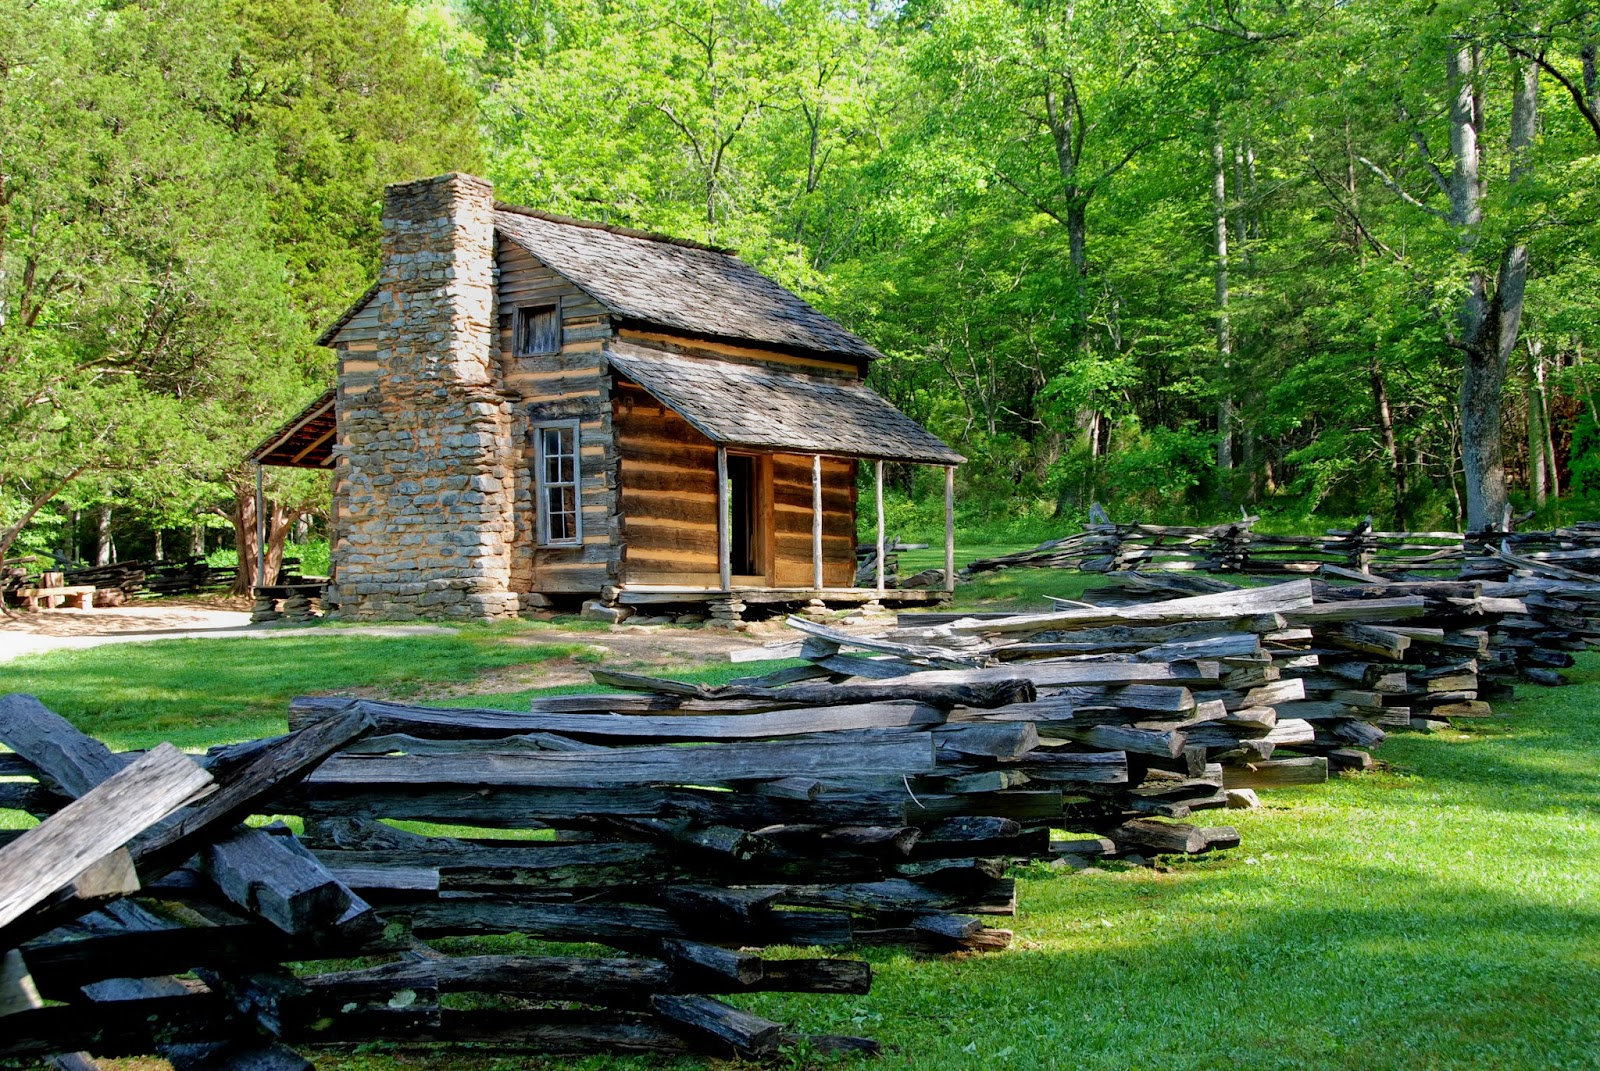 log cabin living one sizzlin idea place called simplicity